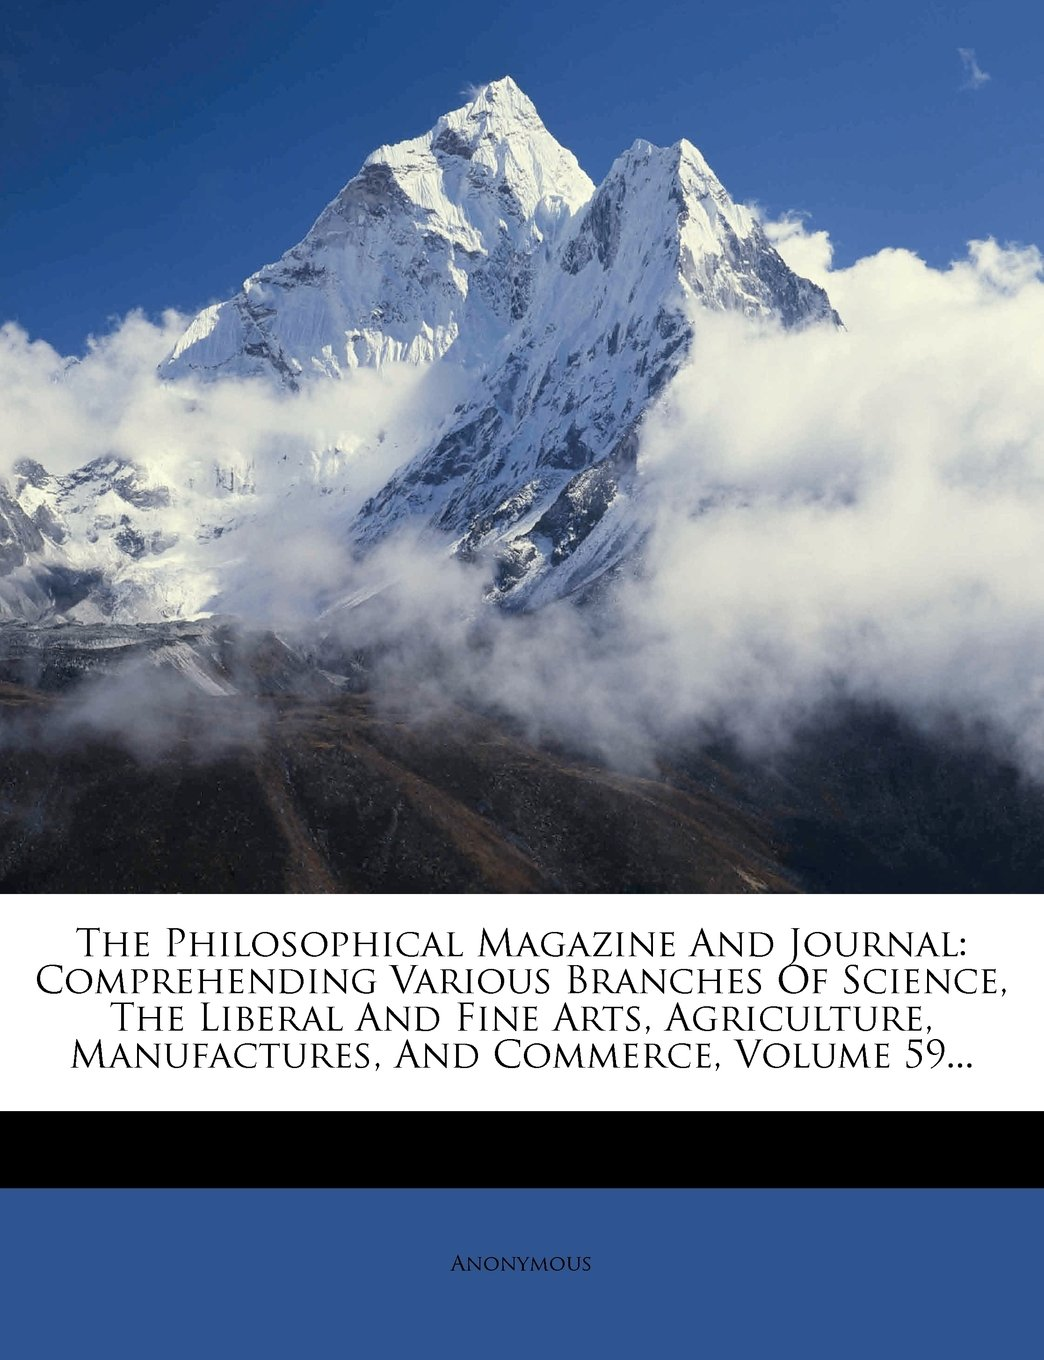 Read Online The Philosophical Magazine And Journal: Comprehending Various Branches Of Science, The Liberal And Fine Arts, Agriculture, Manufactures, And Commerce, Volume 59... pdf epub